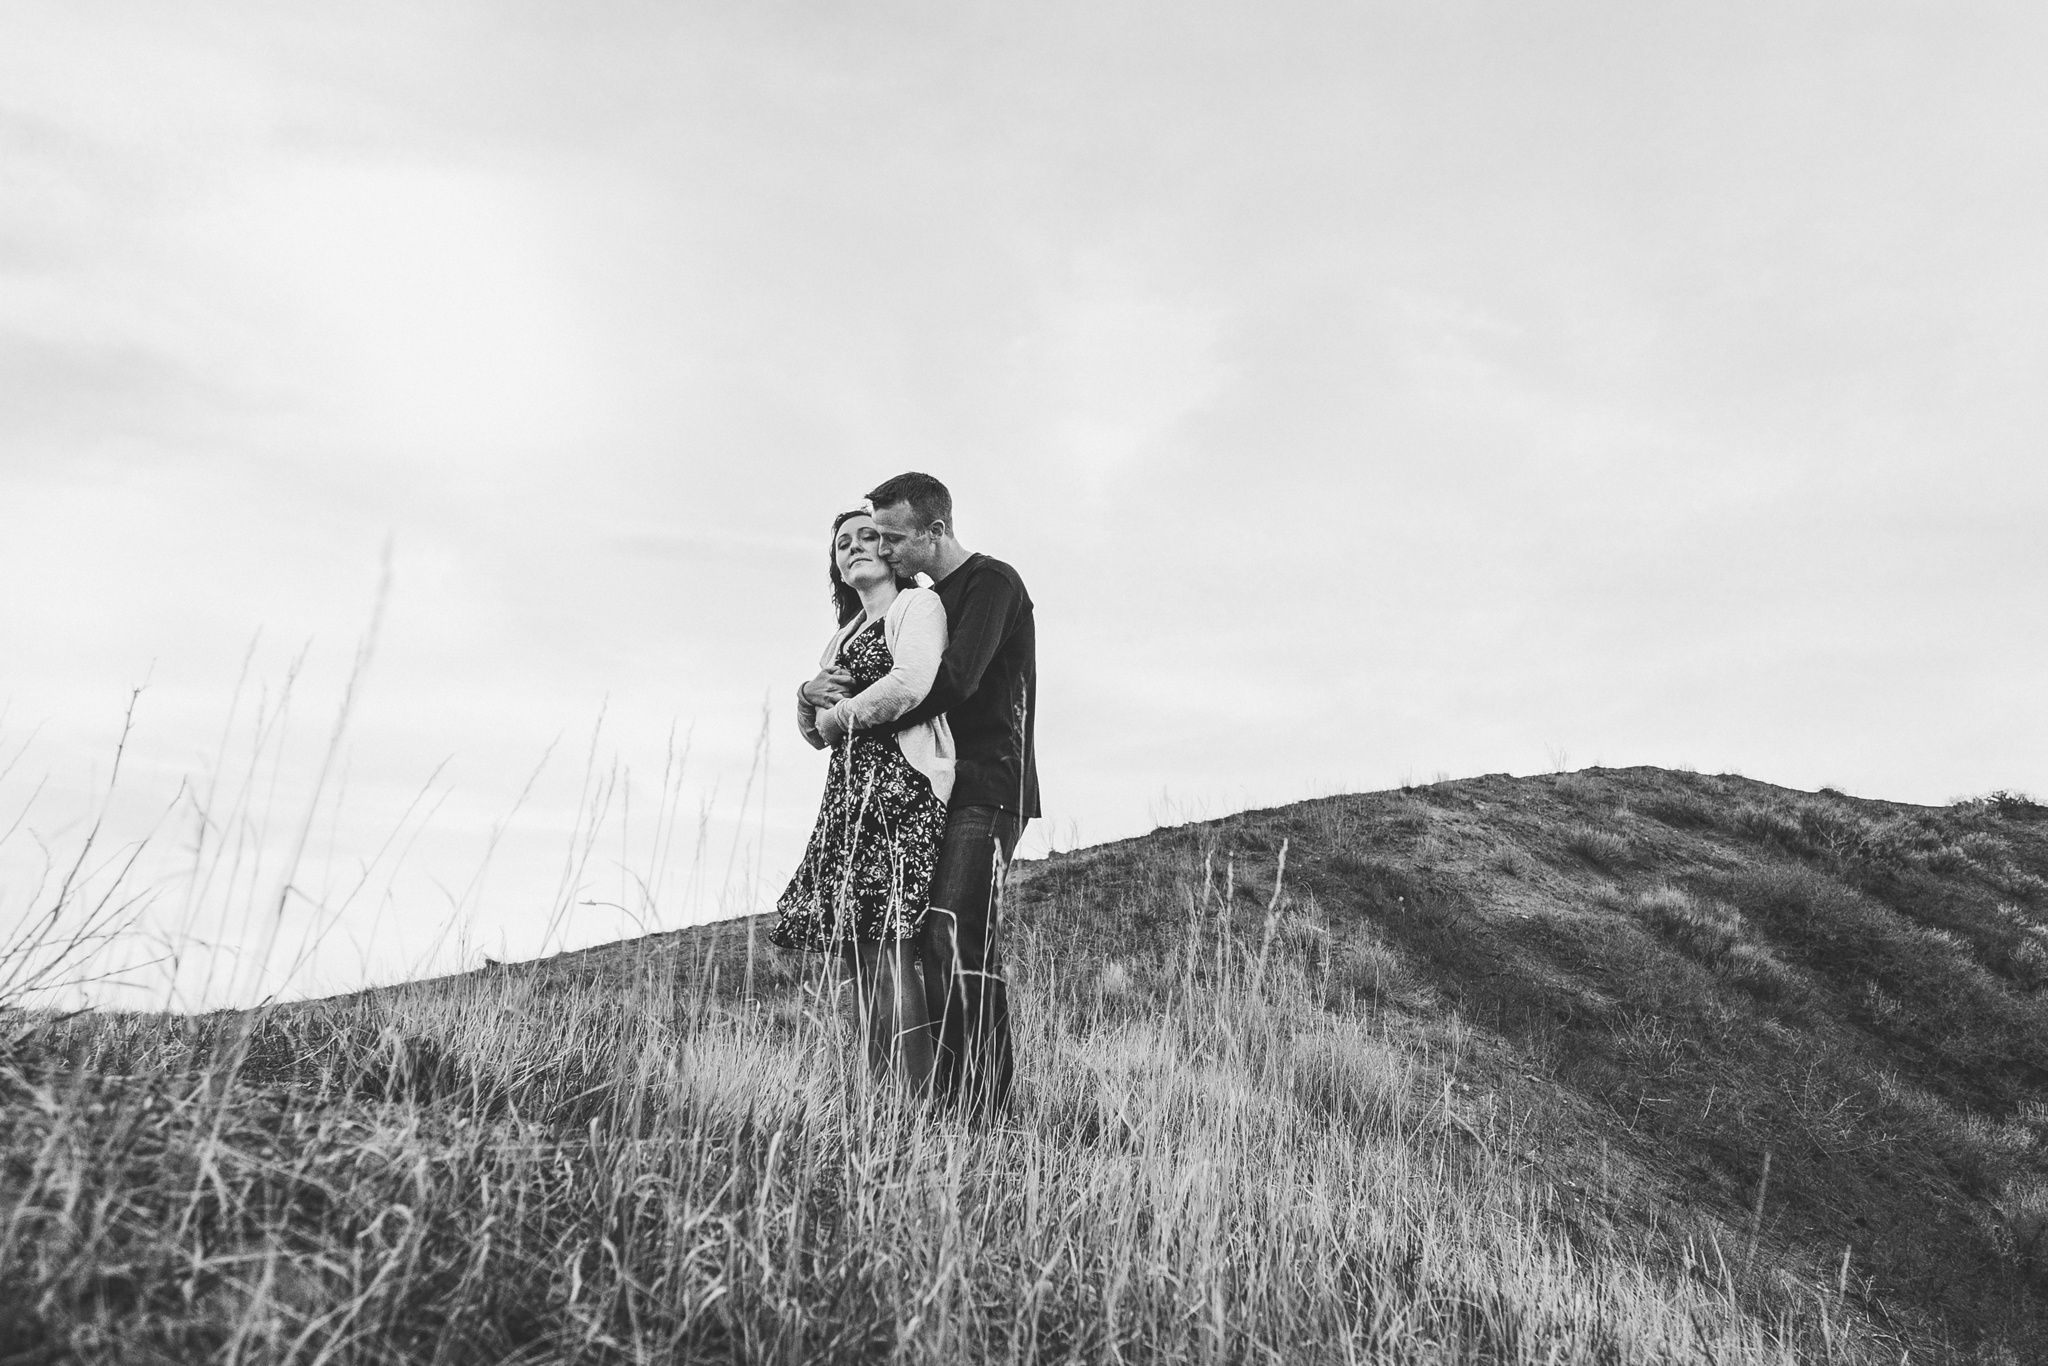 lethbridge-photographer-love-and-be-loved-photography-jessica-john-engagement-picture-image-photo-28.jpg